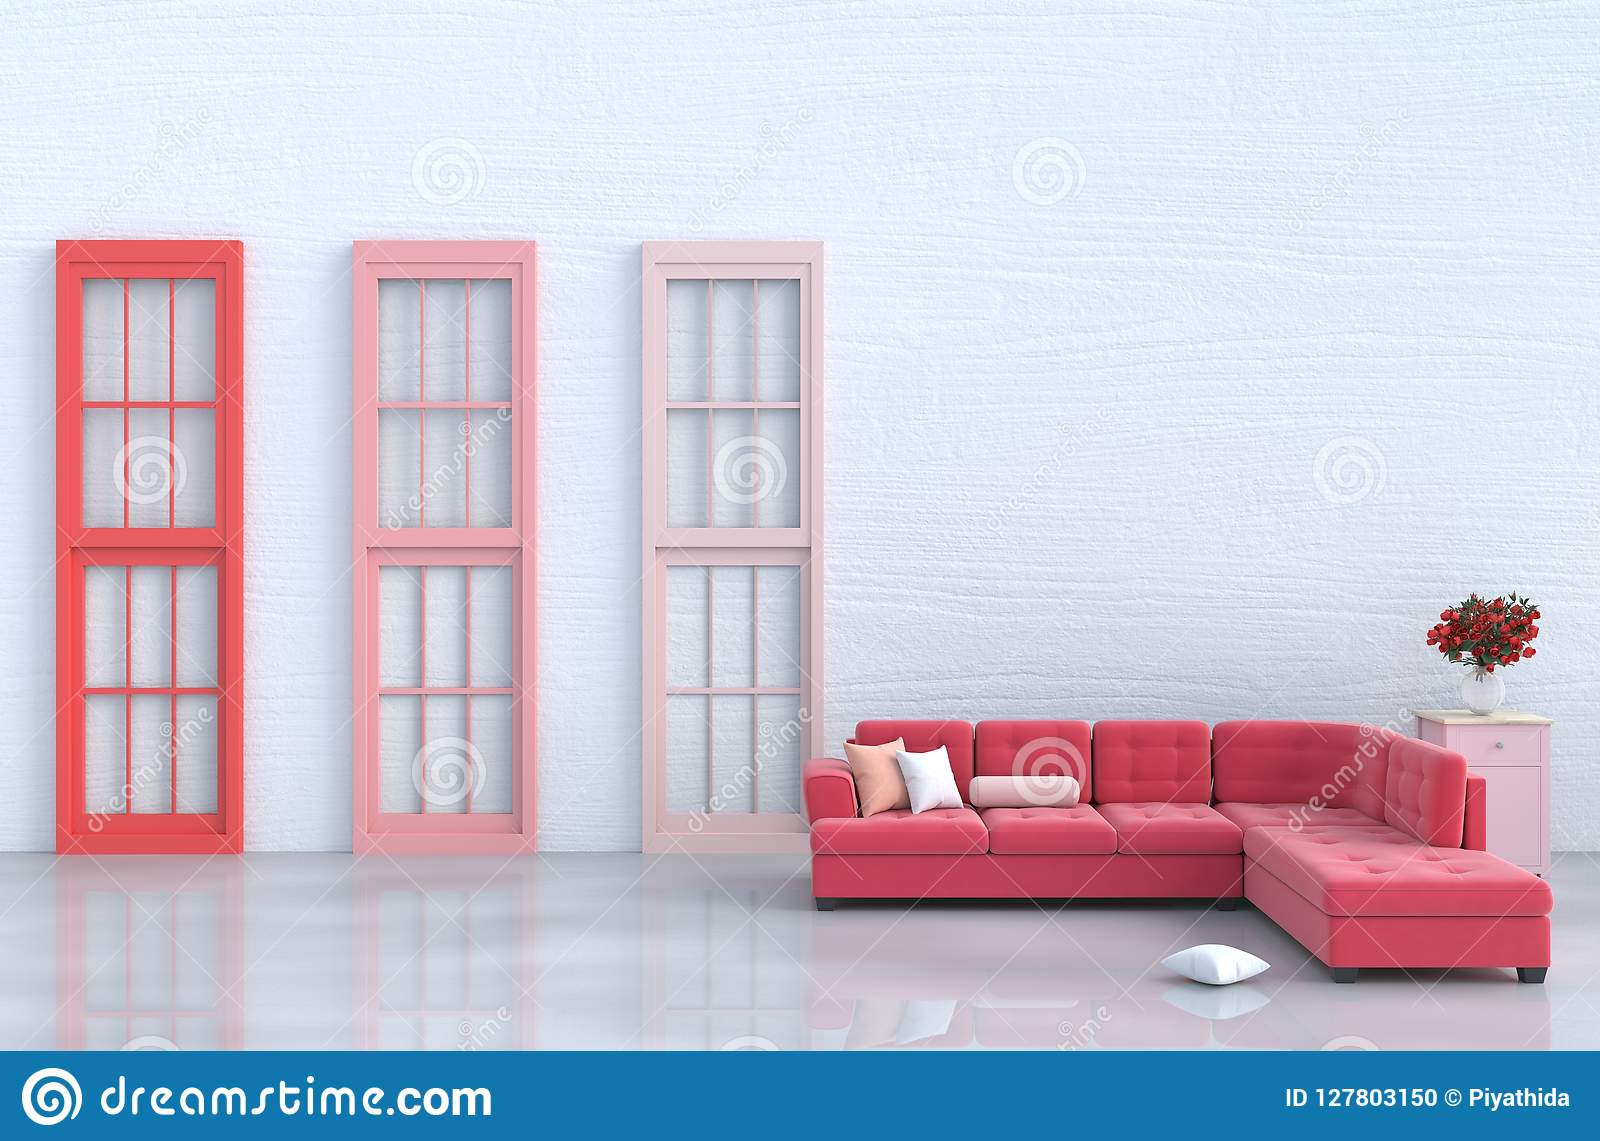 White Living Room Decor With Red Sofa Stock Illustration